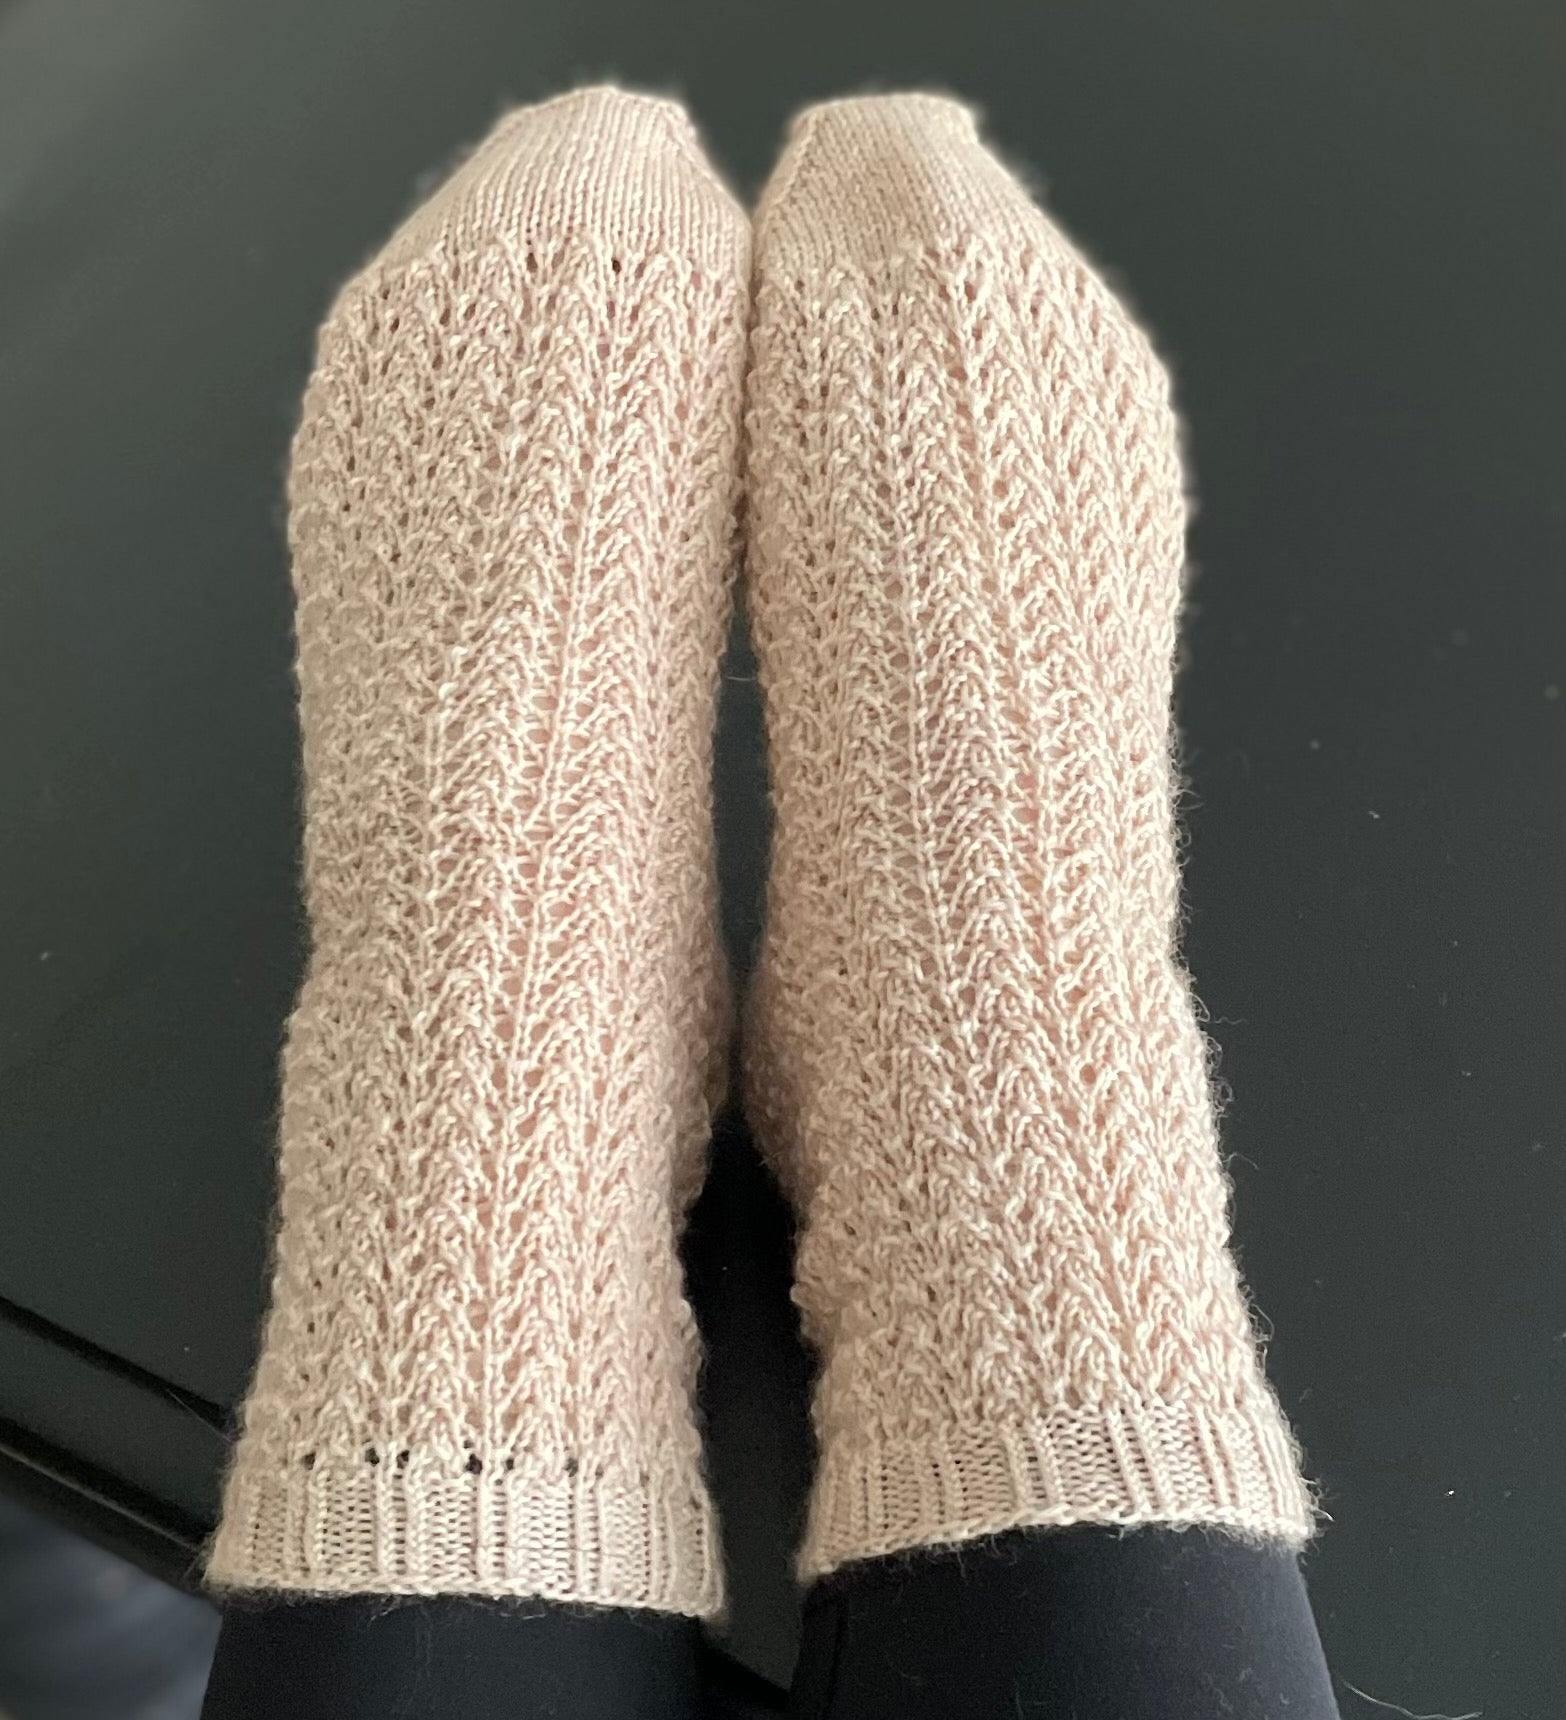 Victorian Cottage Socks by Aubrey Cantrell